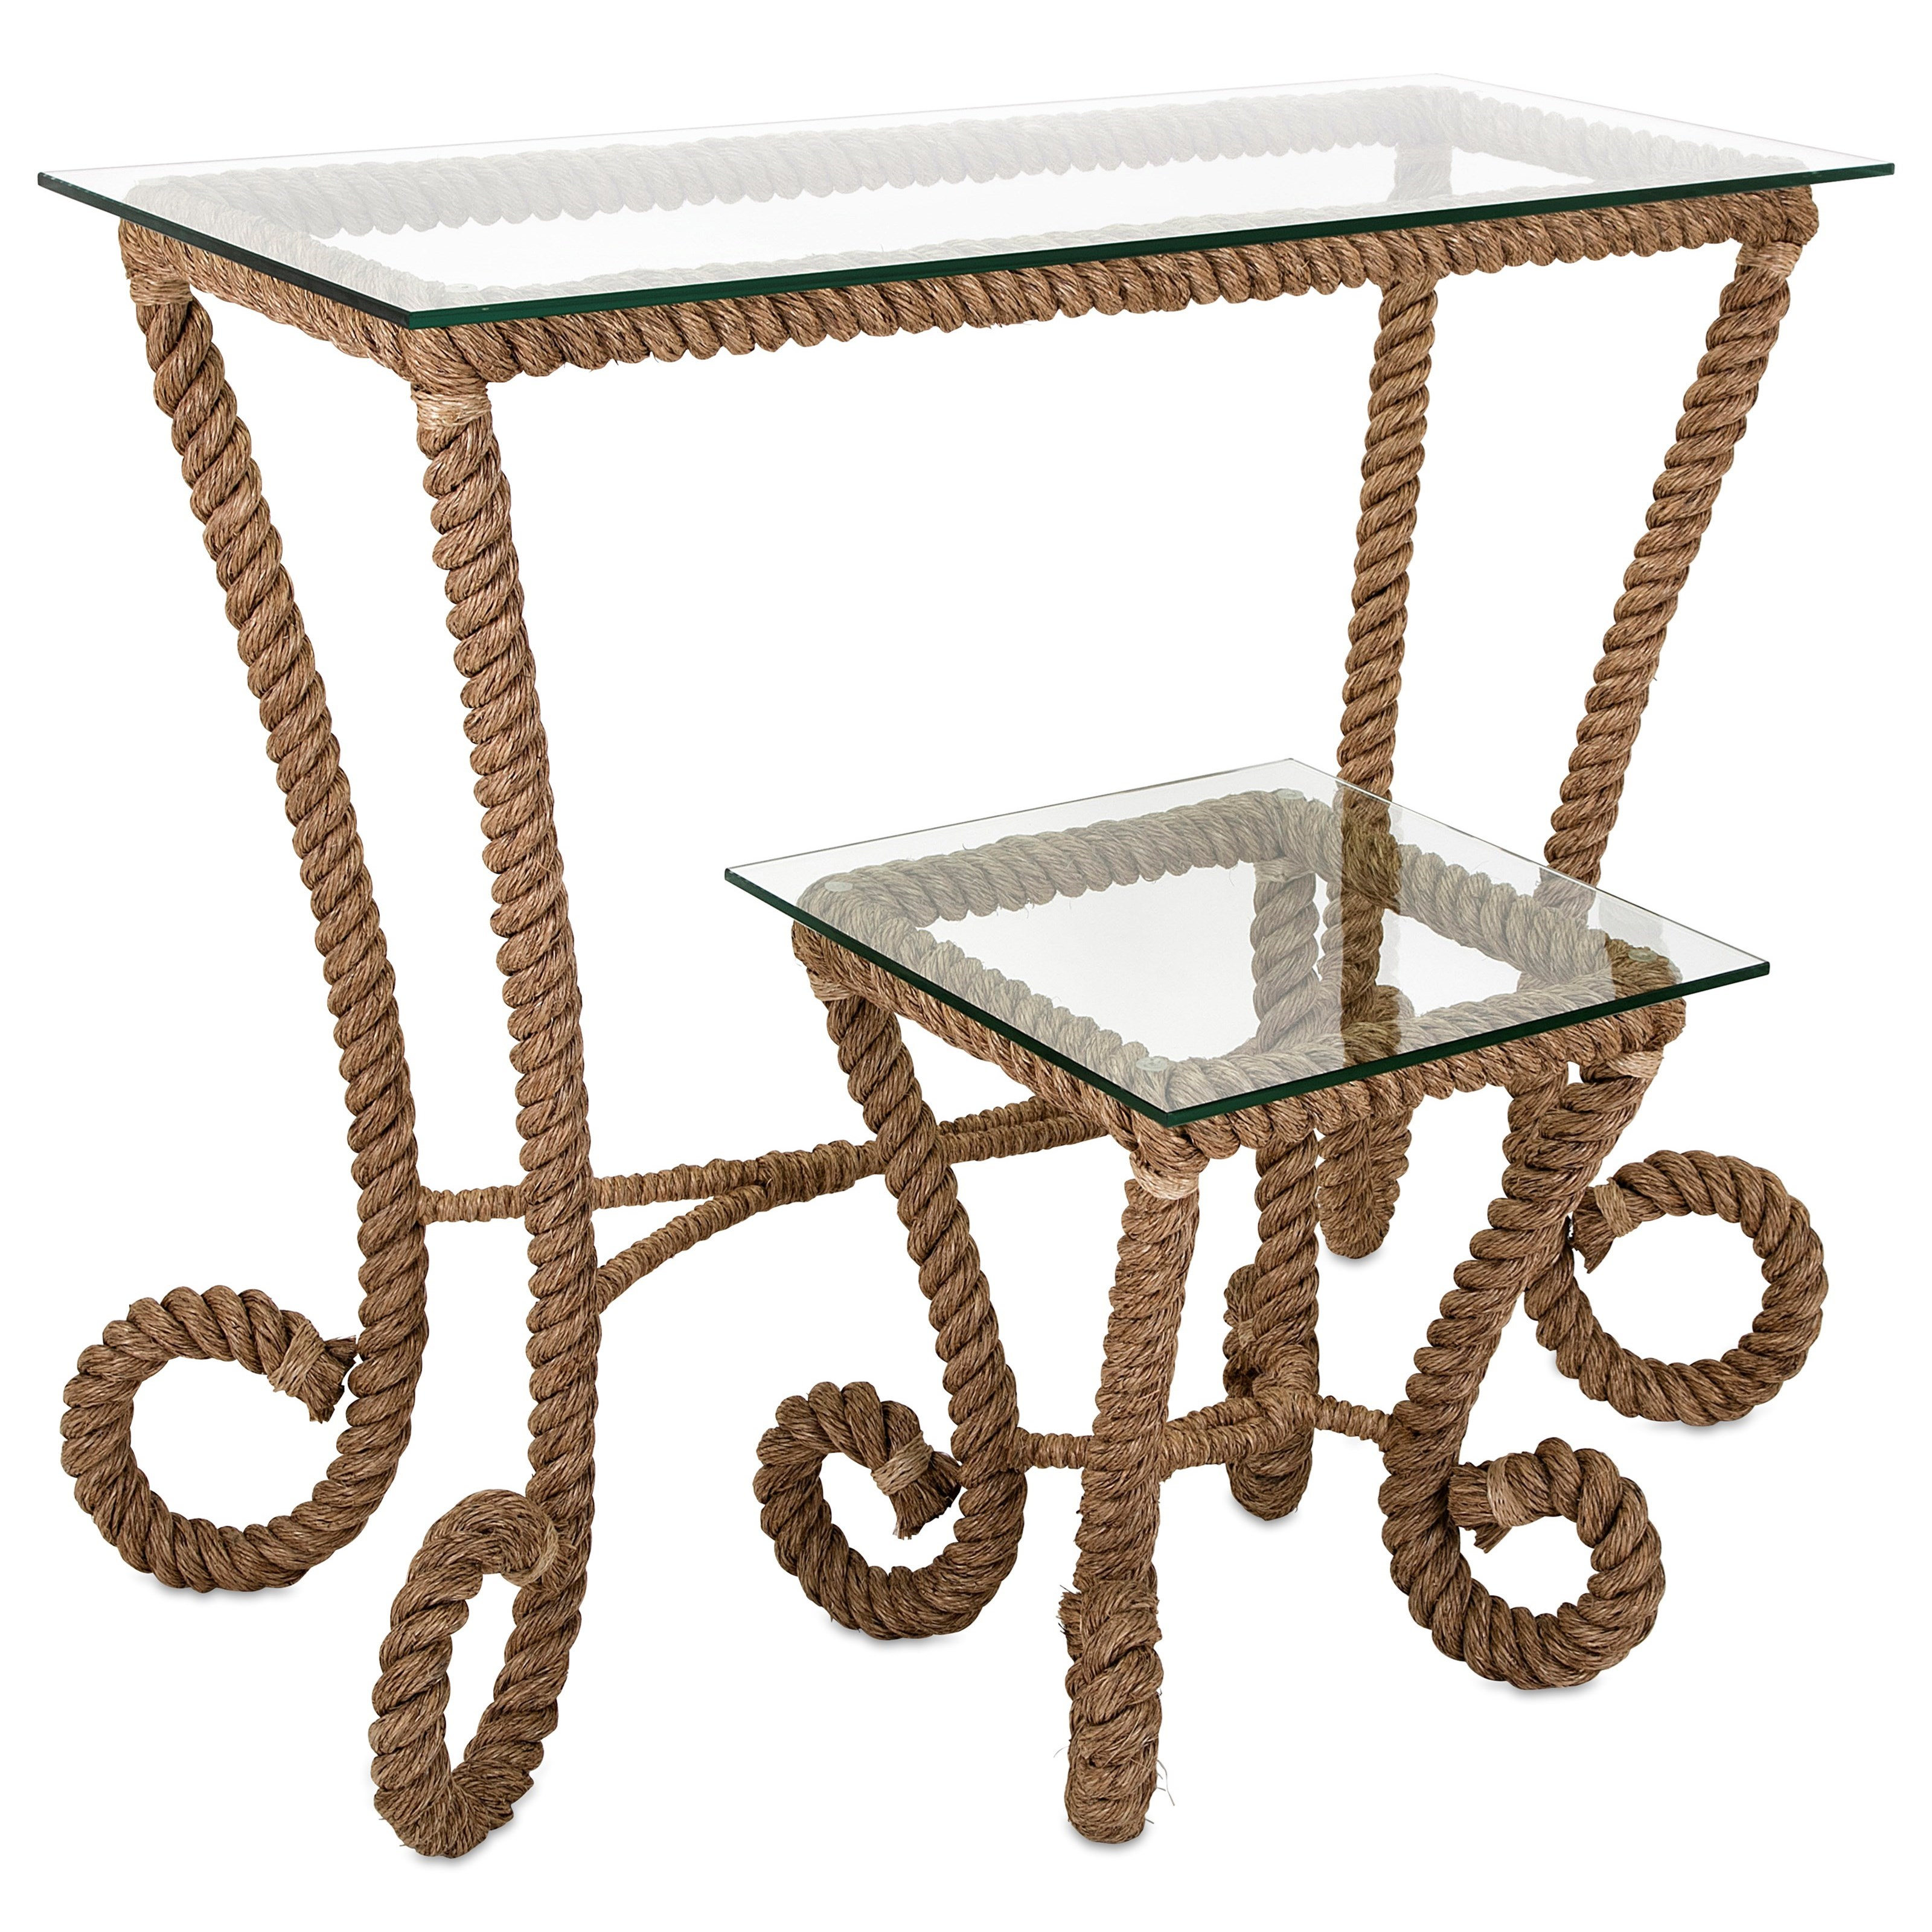 Accent Tables and Cabinets Tranquil Jute Console Table by IMAX Worldwide Home at Alison Craig Home Furnishings